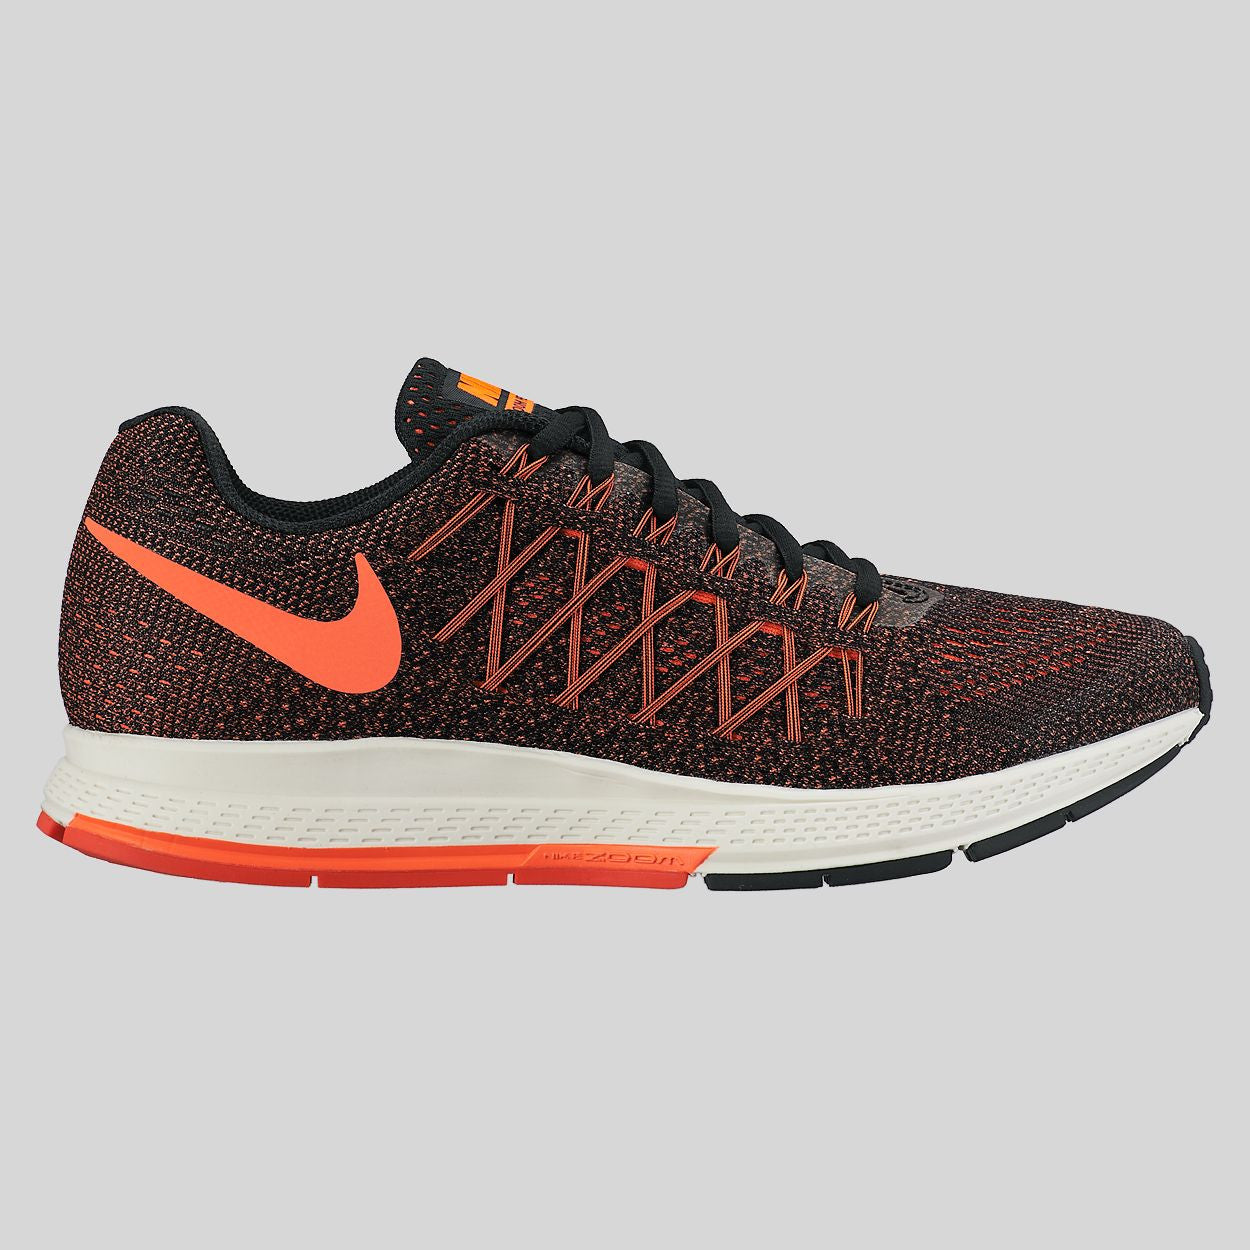 563c7b923393 Nike Wmns Air Zoom Pegasus 32 Black Hyper Orange (749344-009) ...